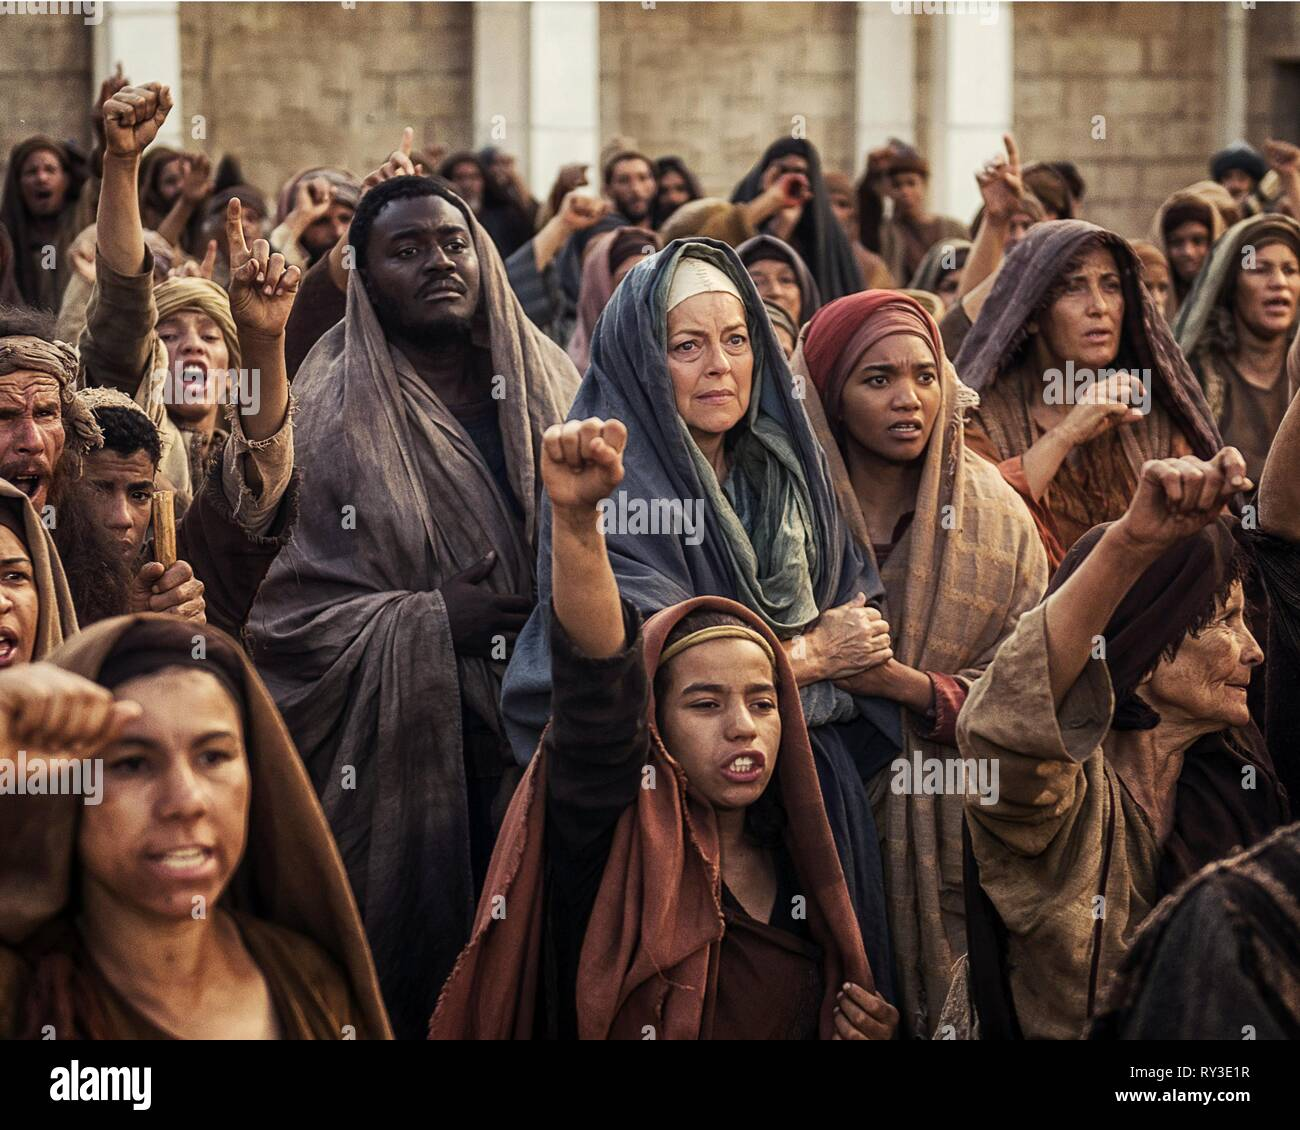 CEESAY,SCACCHI,CHUNG, A.D. THE BIBLE CONTINUES, 2015 - Stock Image